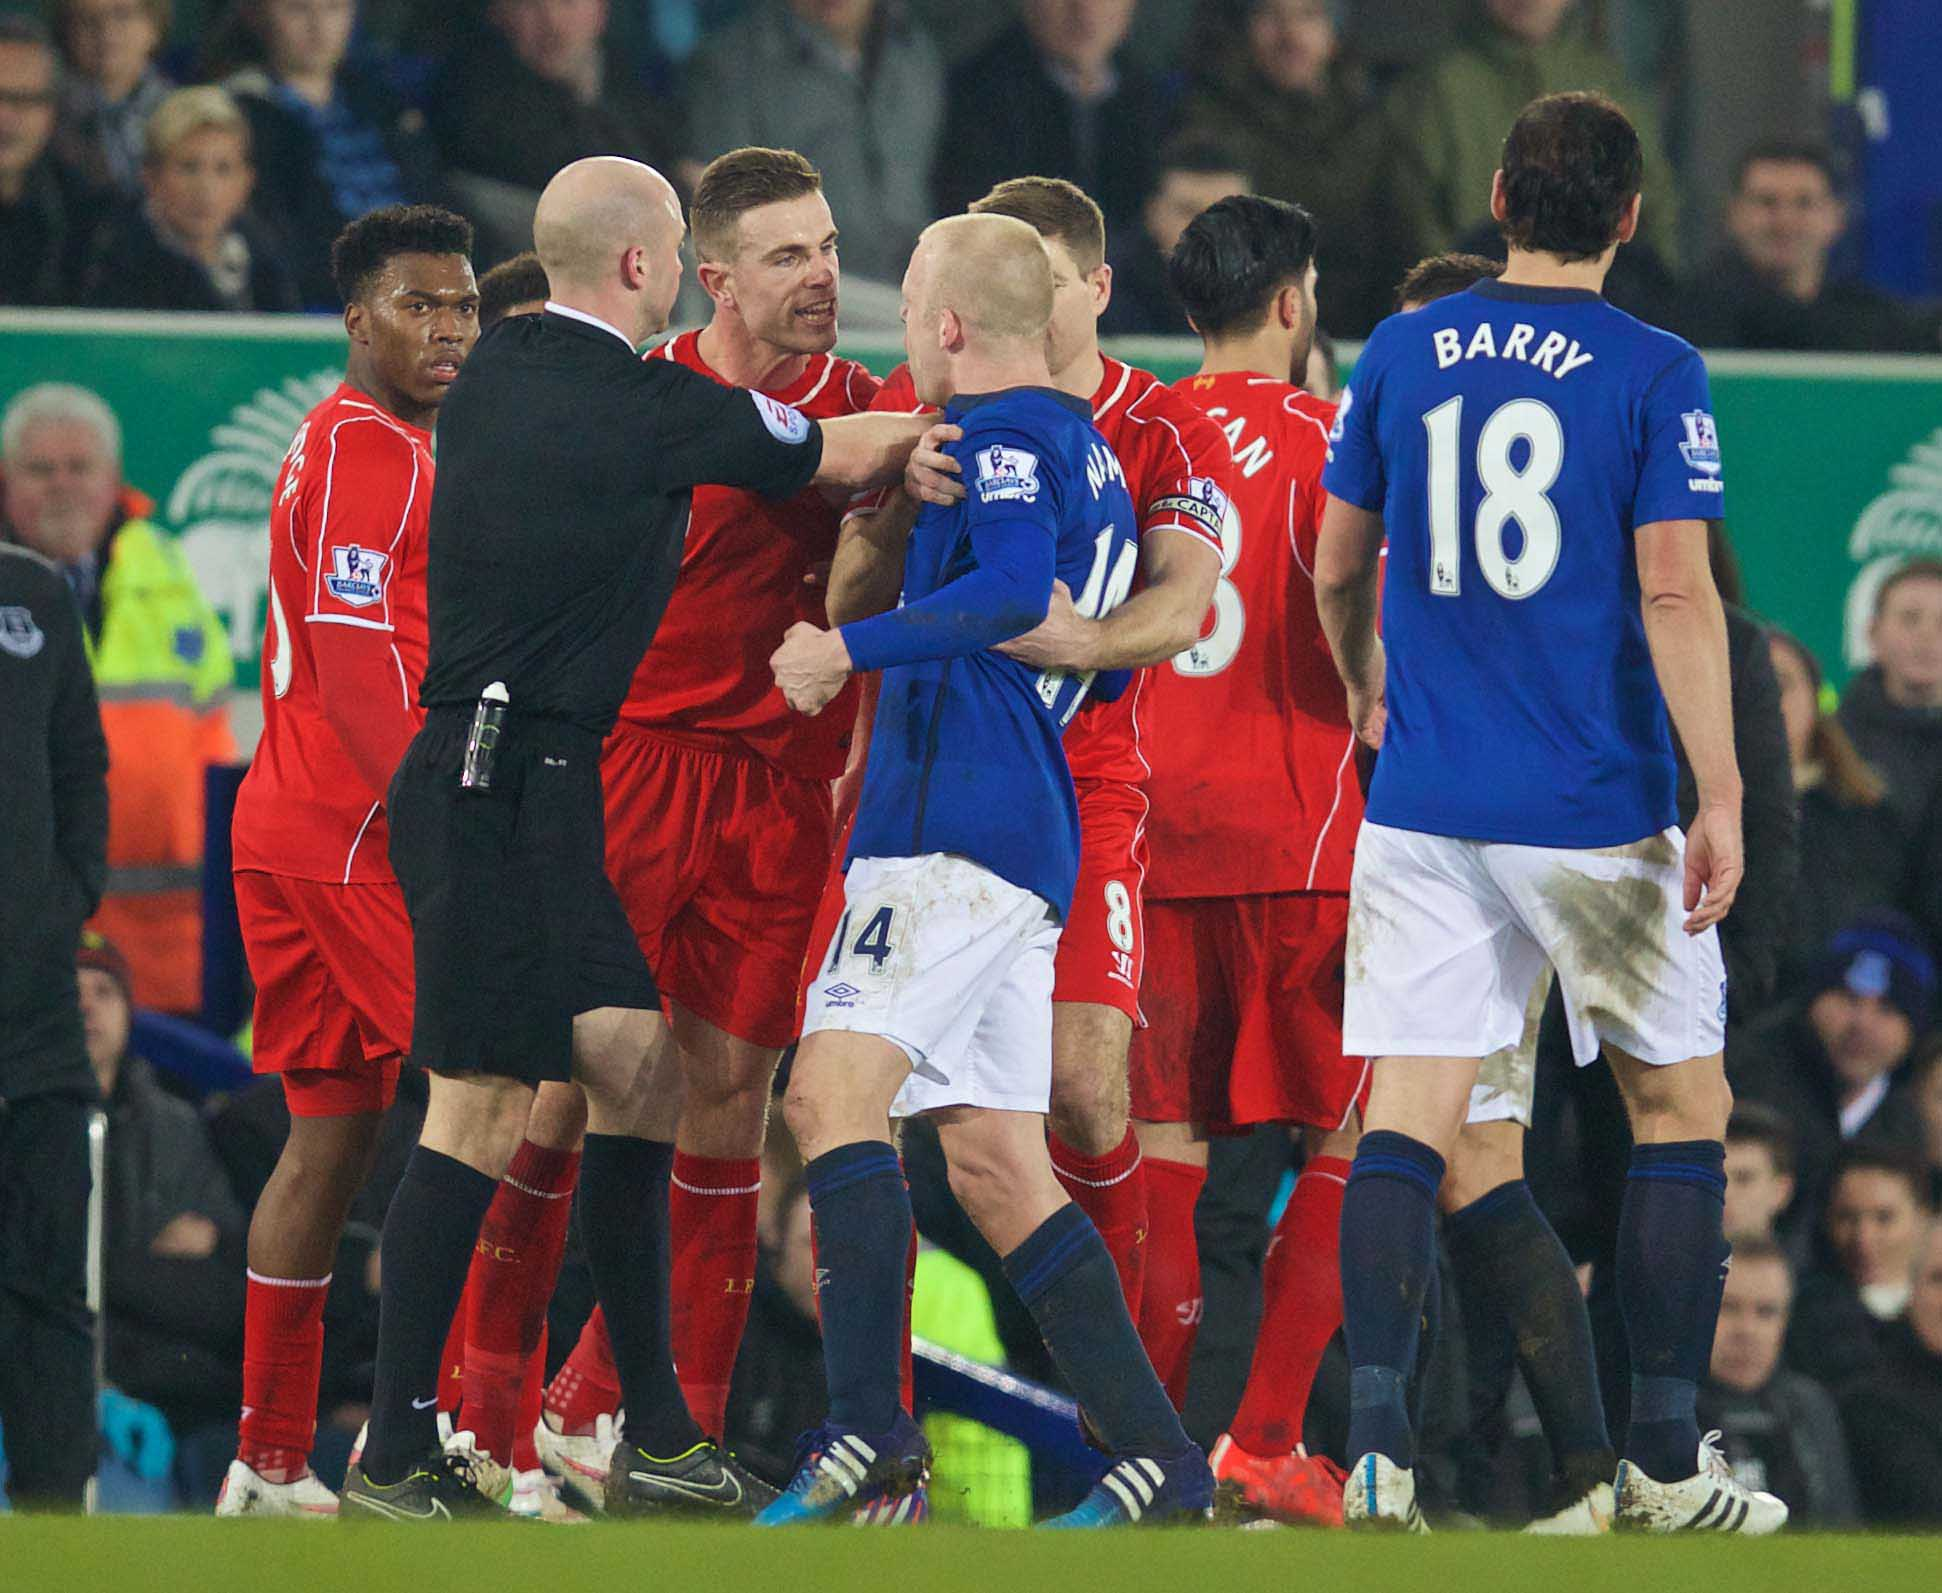 69b93fd4ff4 MATCH REVIEW  EVERTON 0 LIVERPOOL 0 - The Anfield Wrap